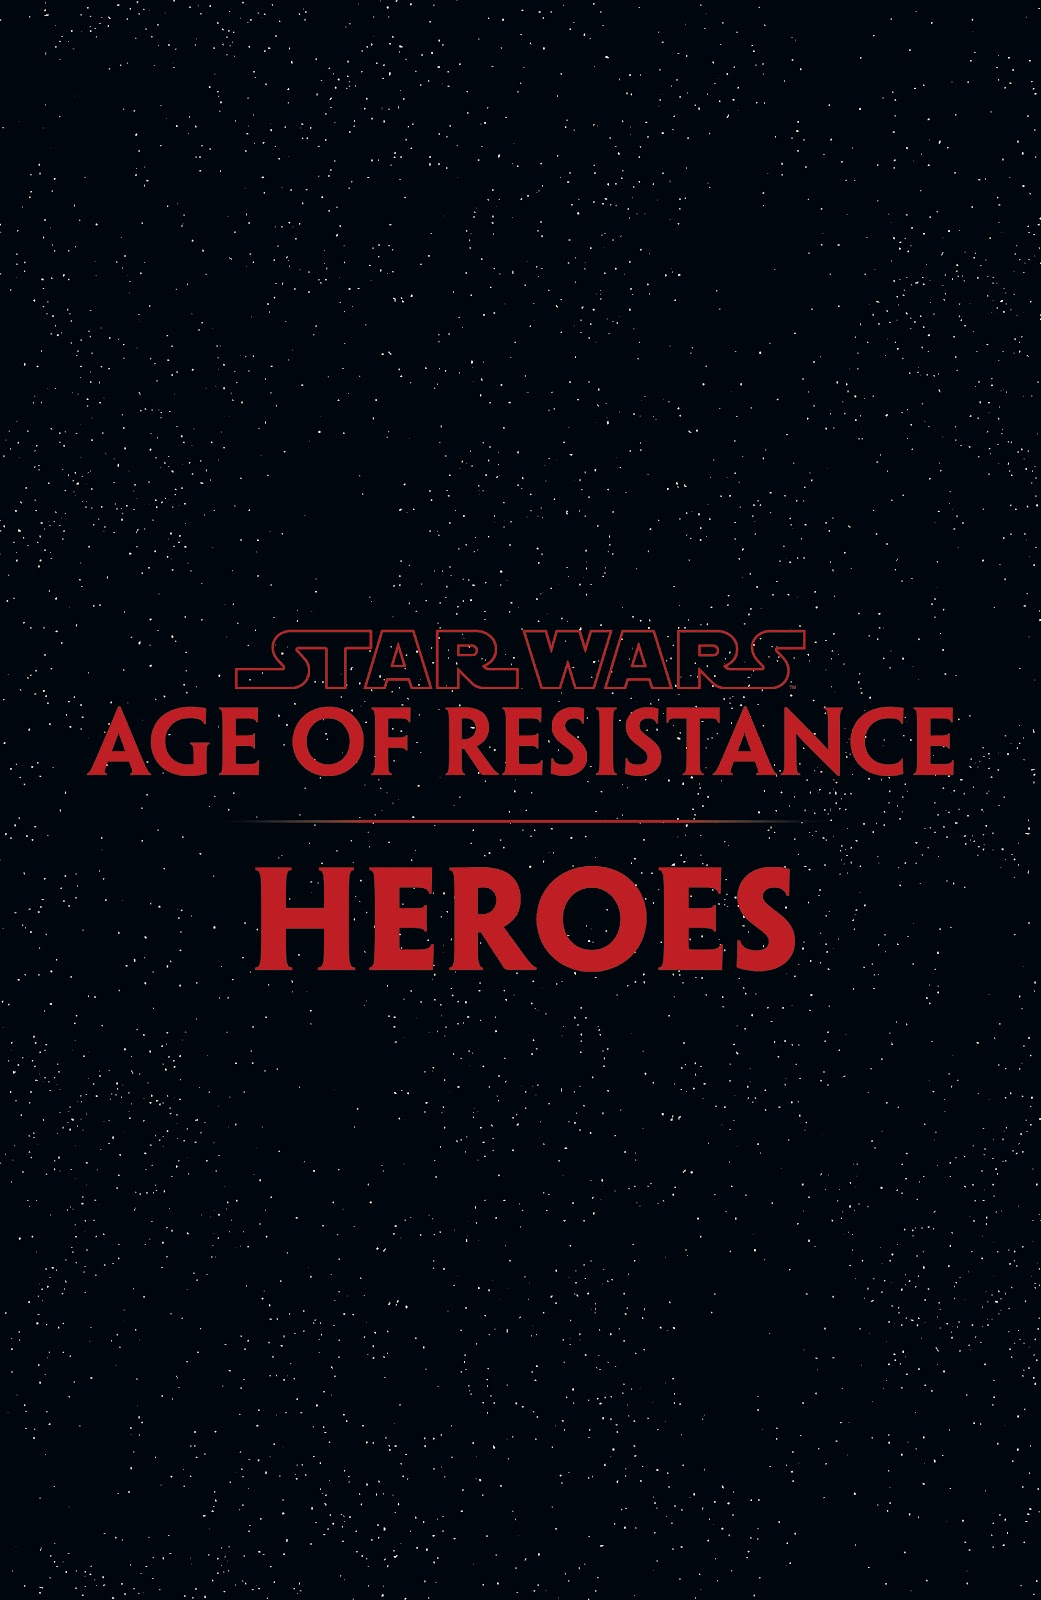 Read online Star Wars: Age of Republic: Heroes comic -  Issue # TPB - 2